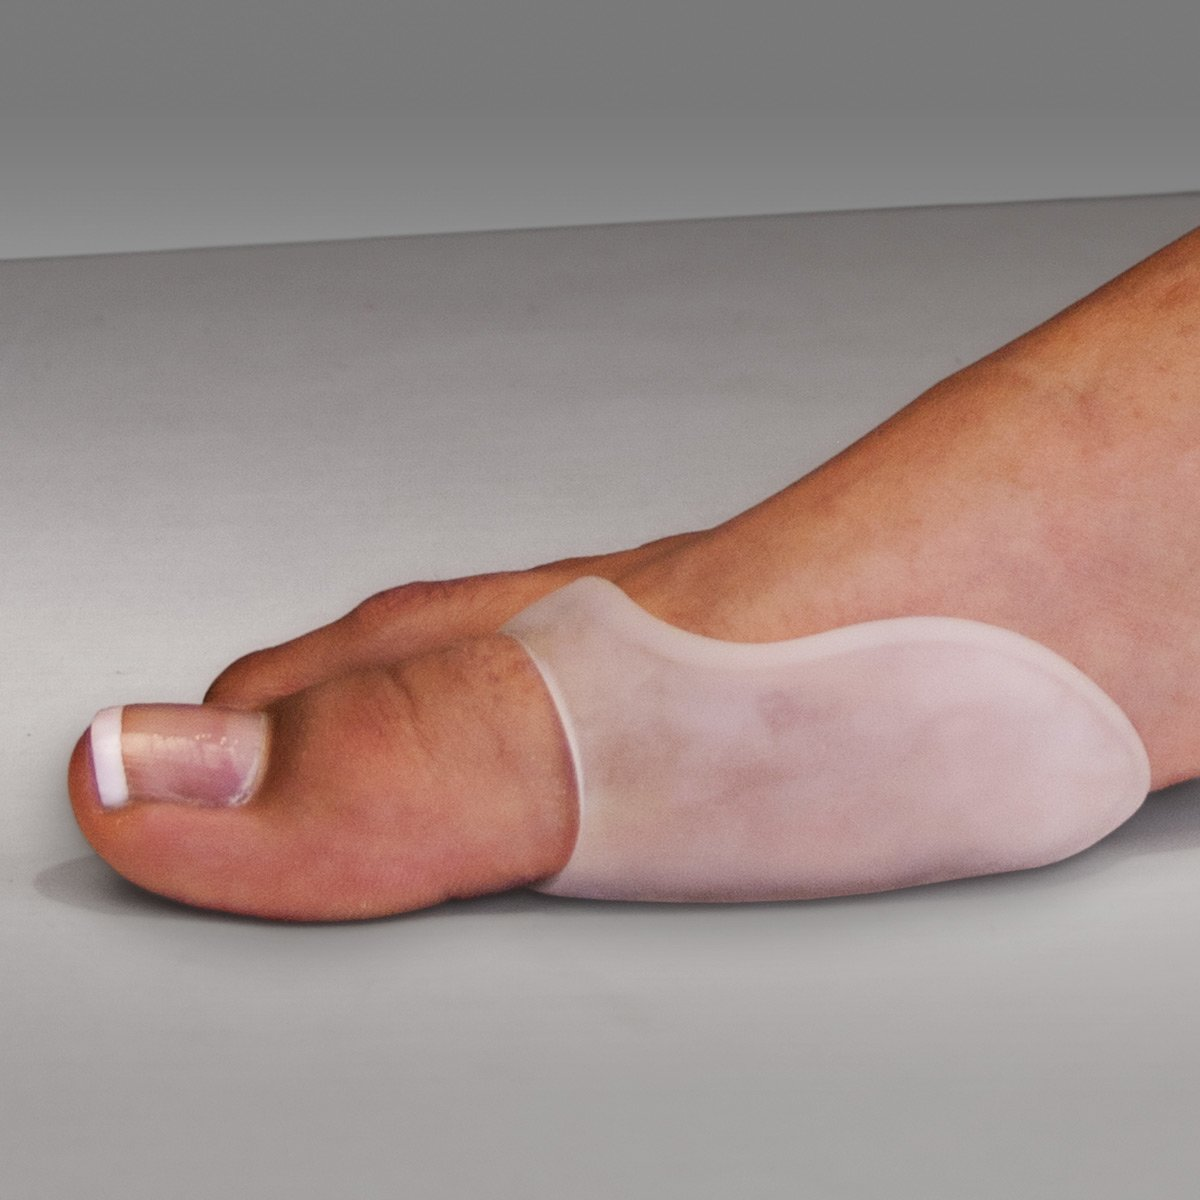 Gel bunion shield